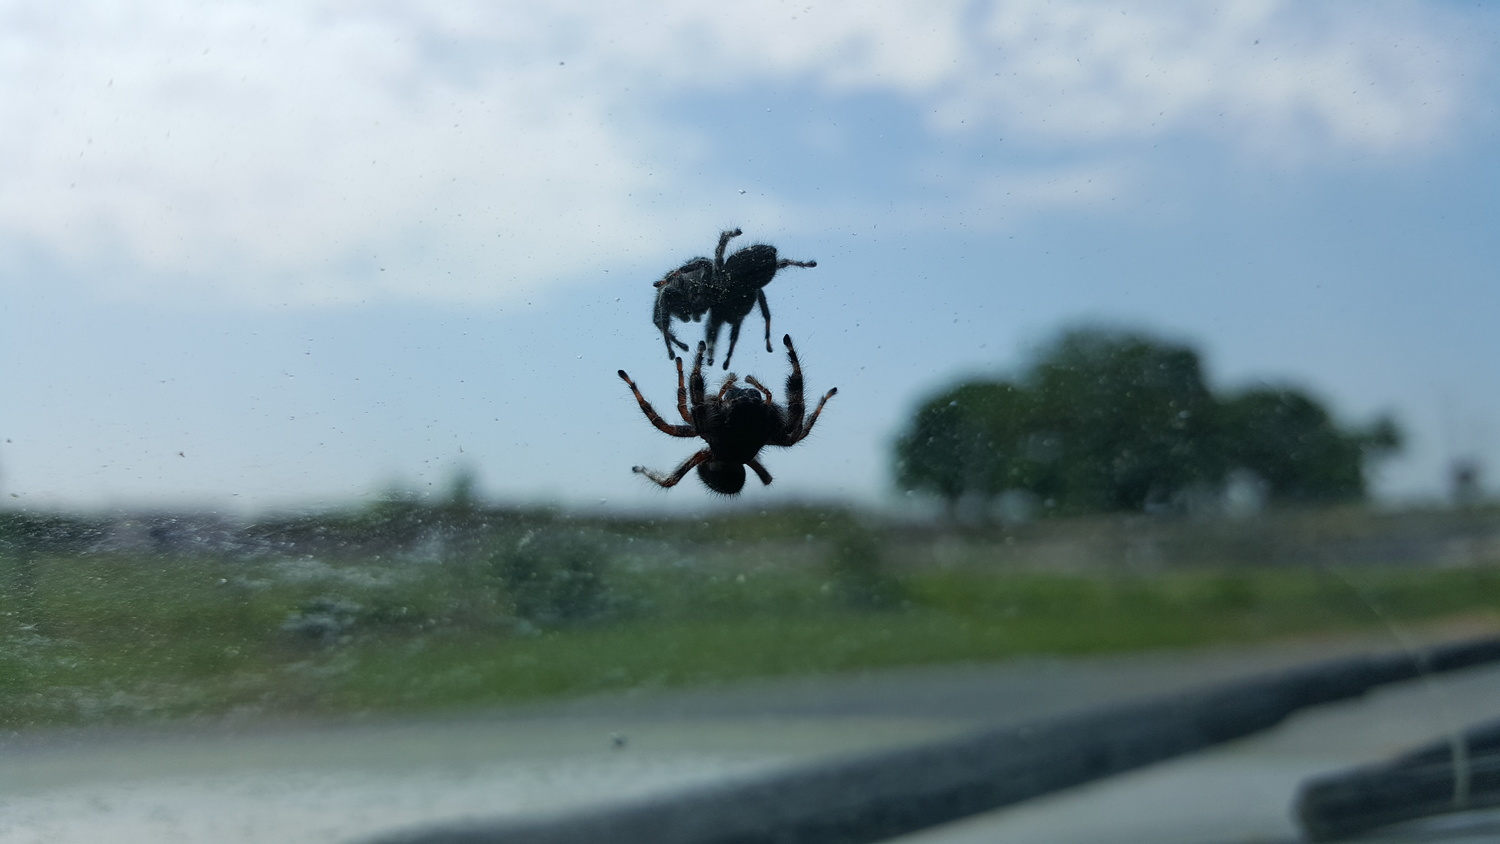 Spider Fight through Glass by Thomas Schnell